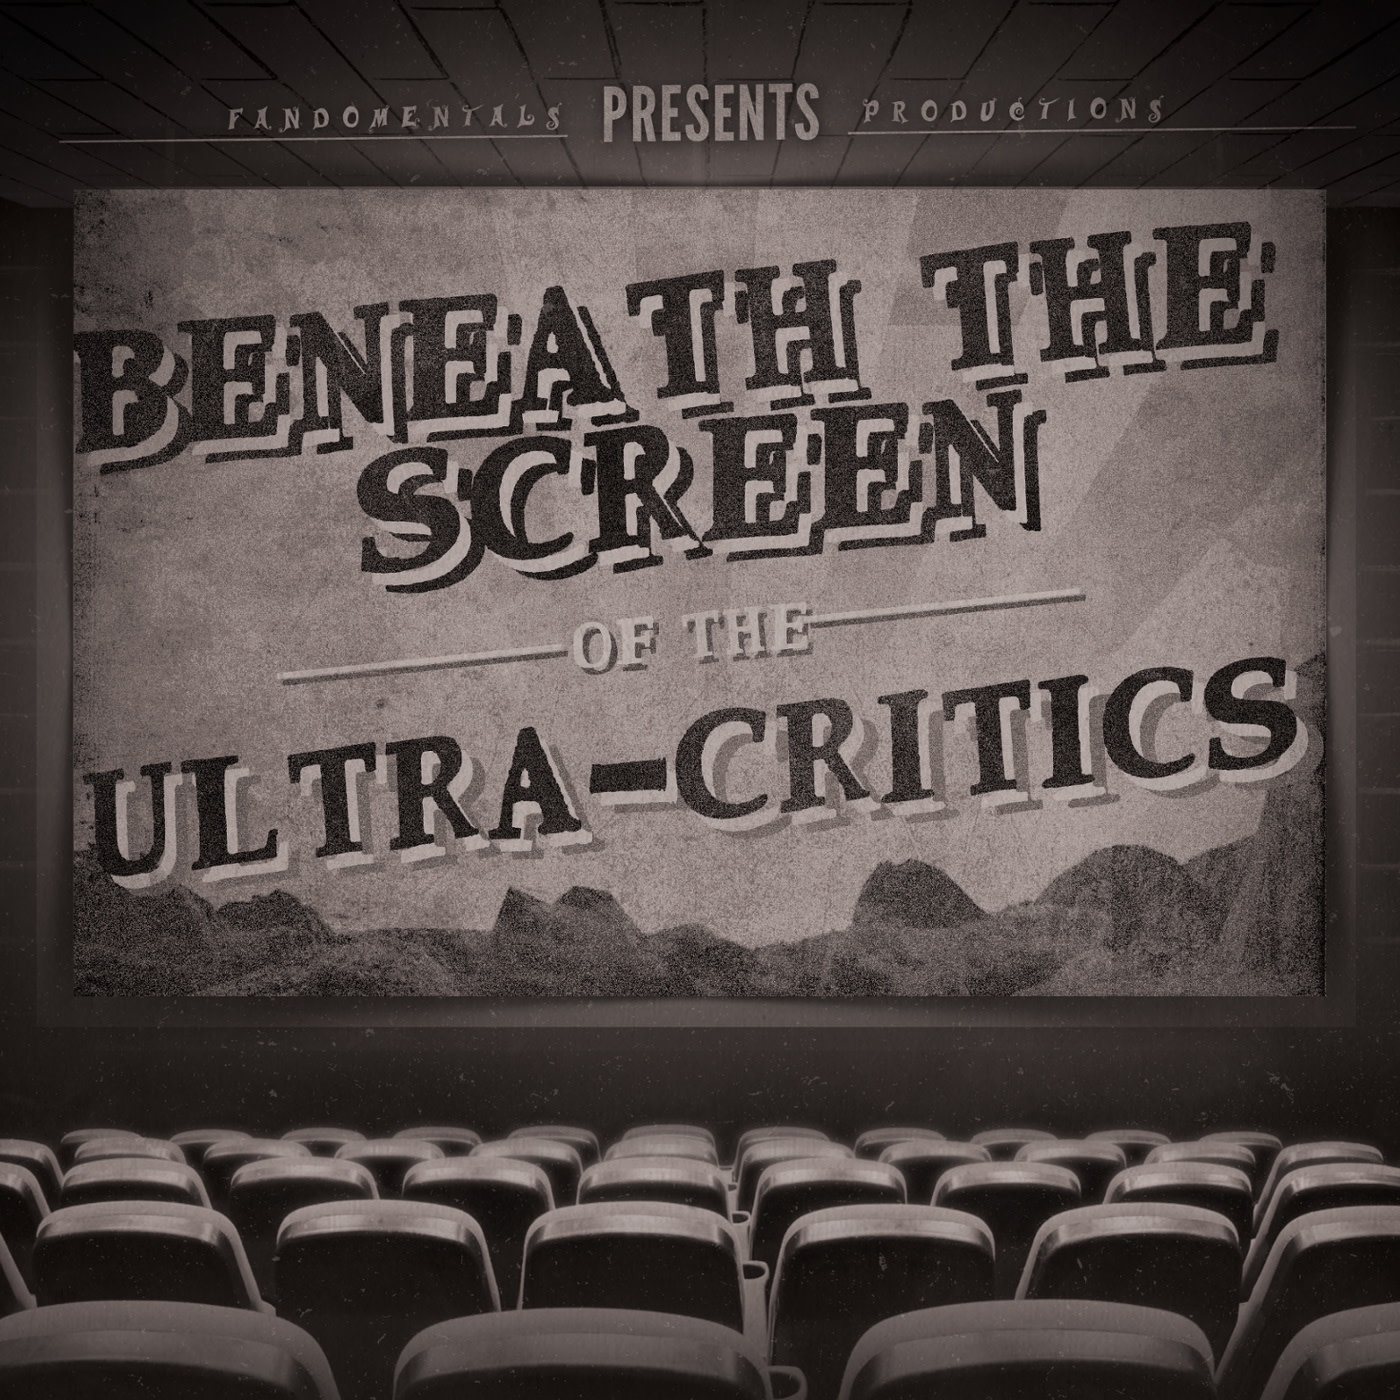 Artwork for podcast Beneath the Screen of the Ultra-Critics